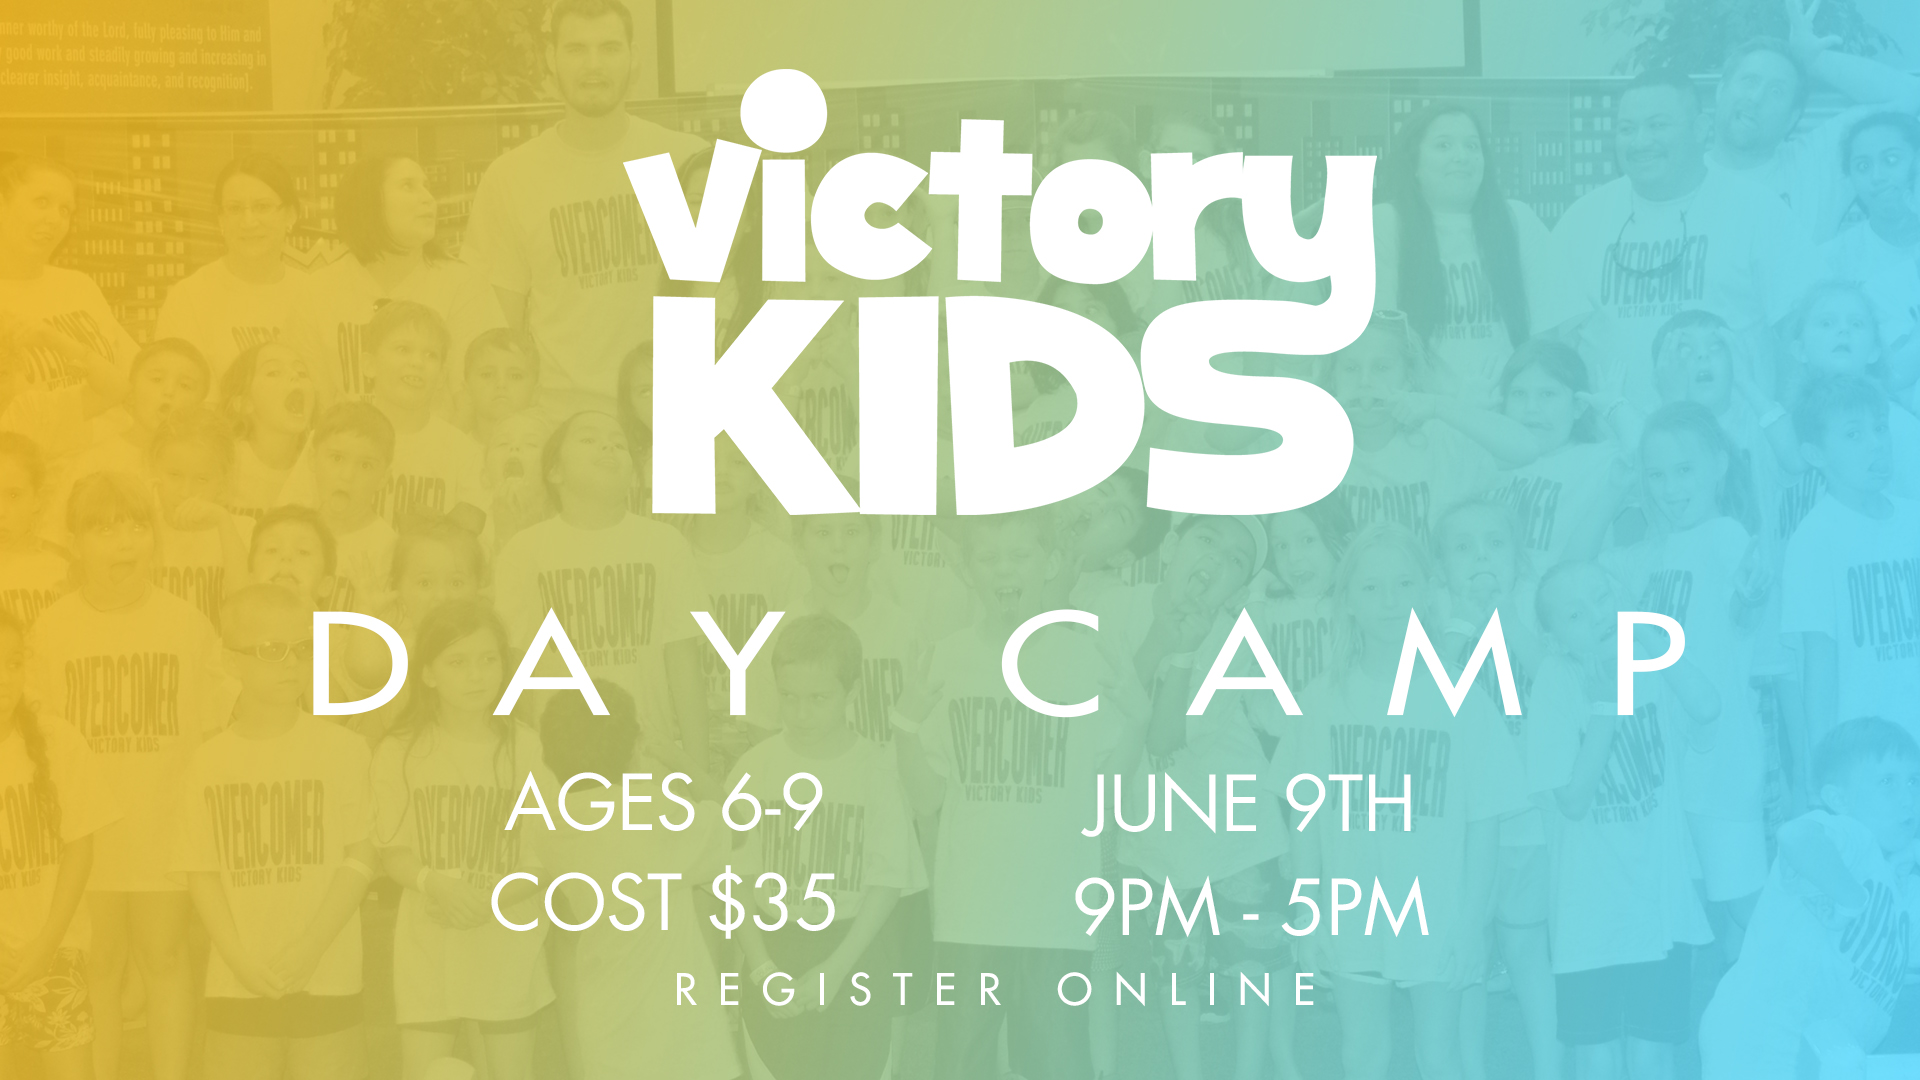 Victory kids day camp 2017